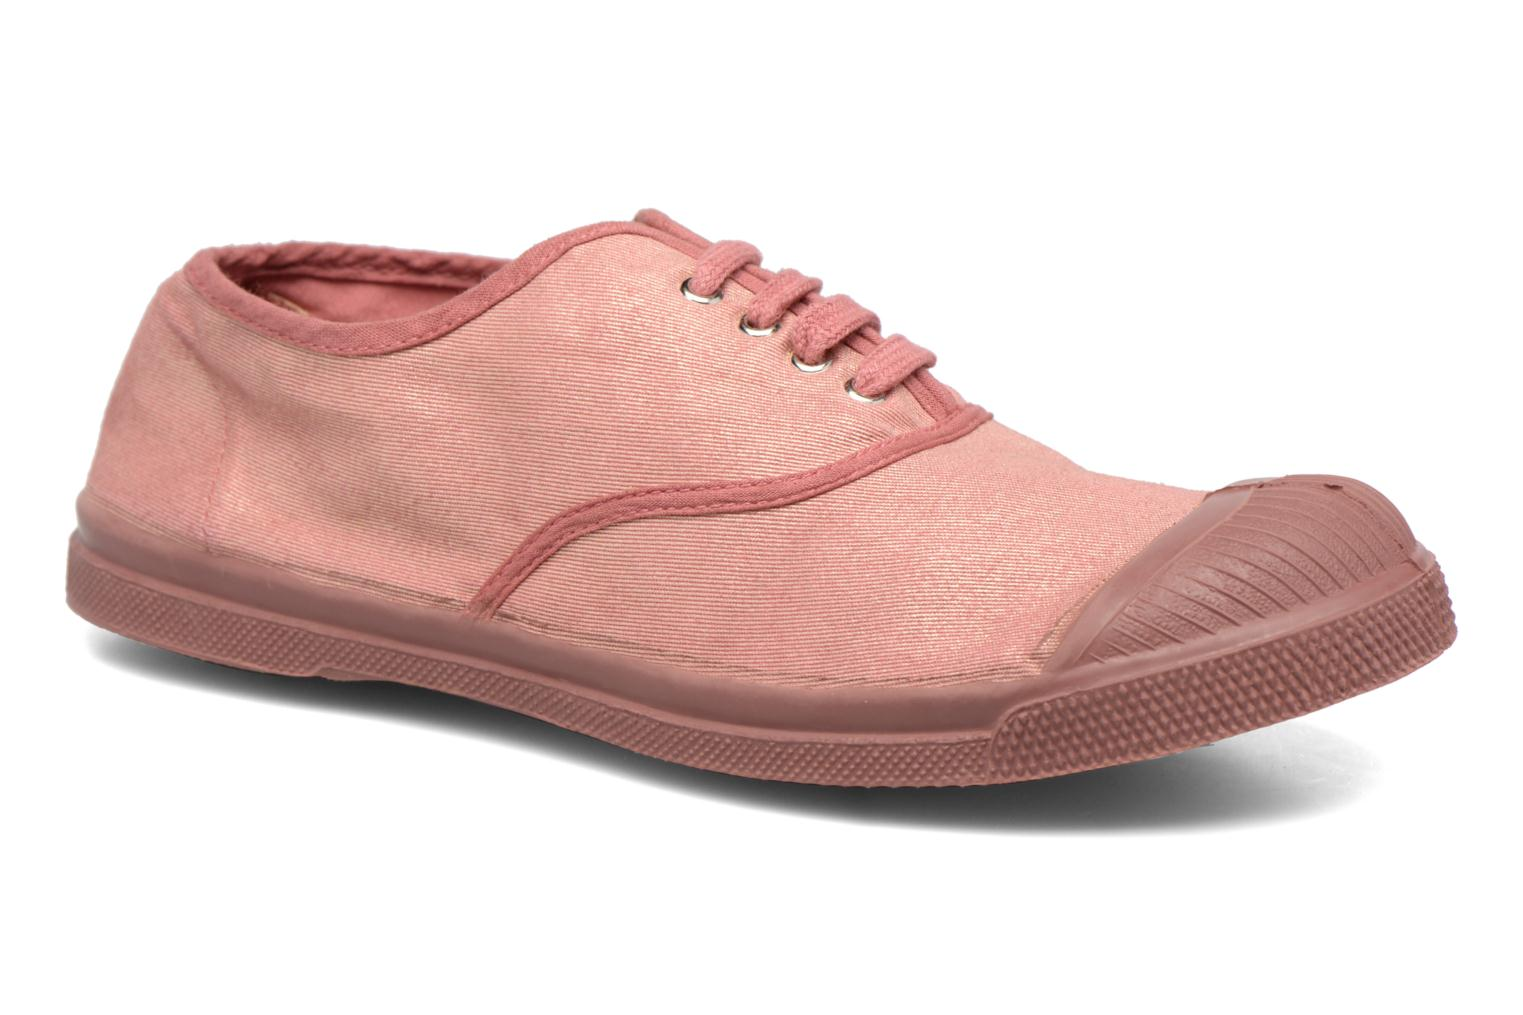 Bensimon Tennis Colorsole (Rose) - Baskets en Más cómodo Dédouanement saisonnier